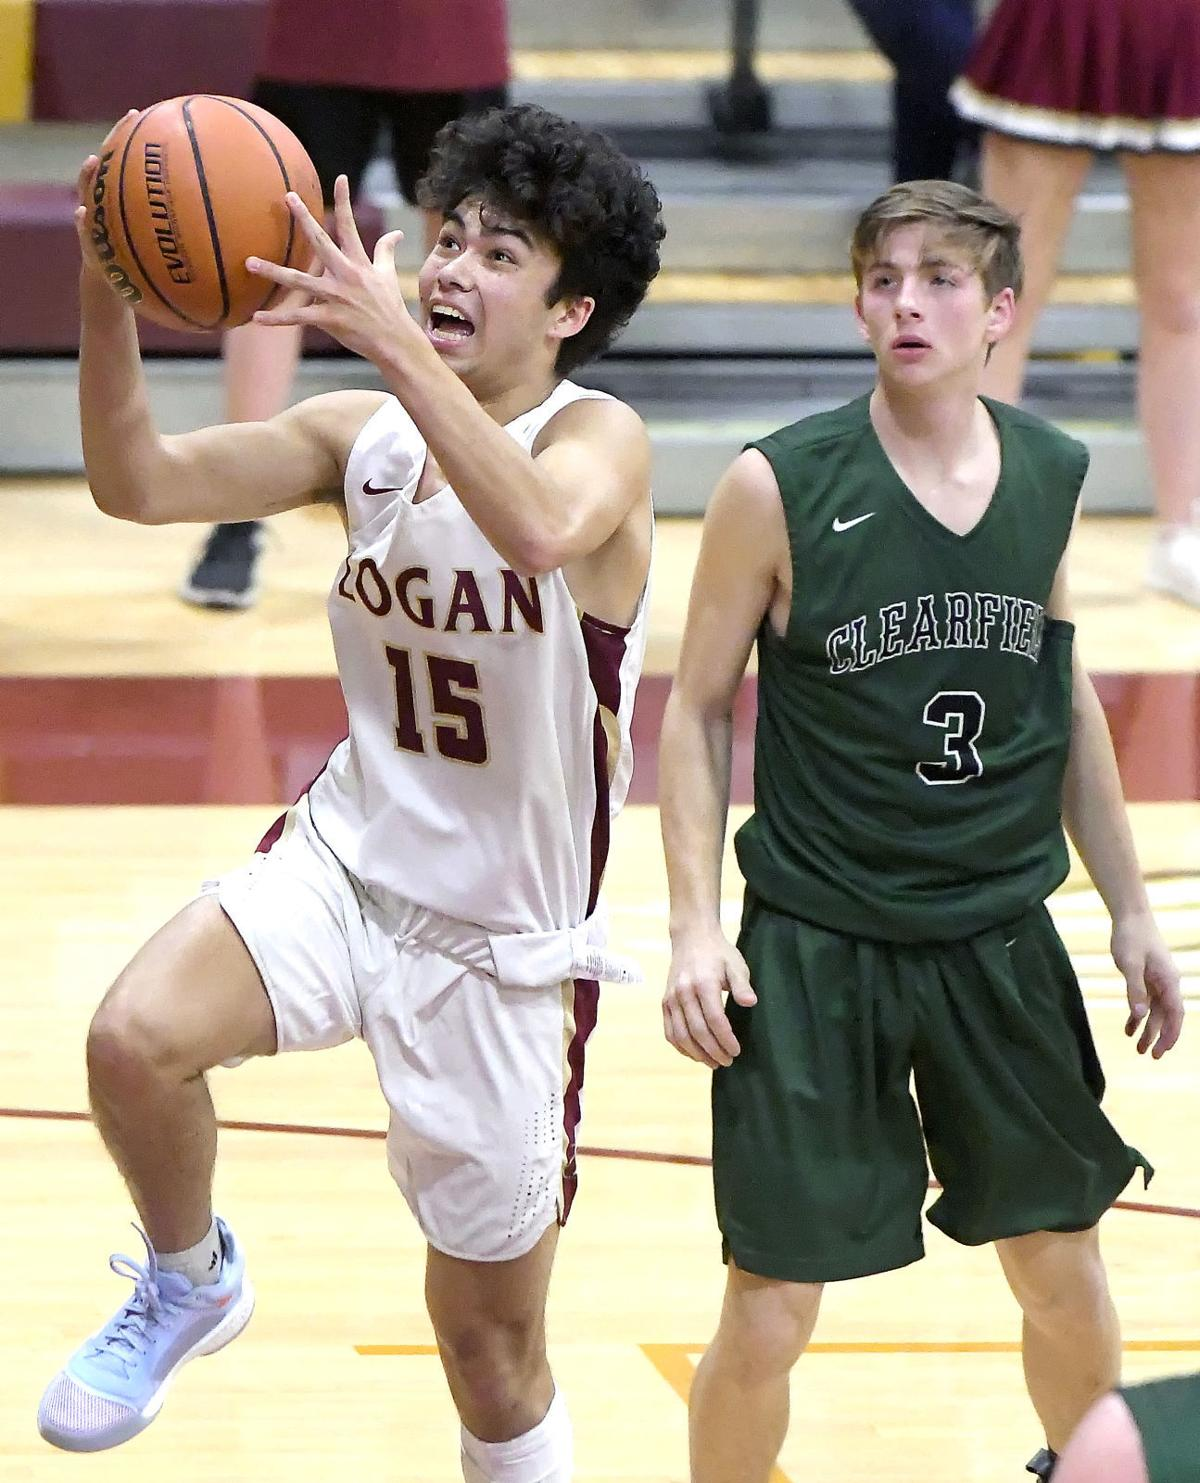 logan clearfield basketball SECONDARY